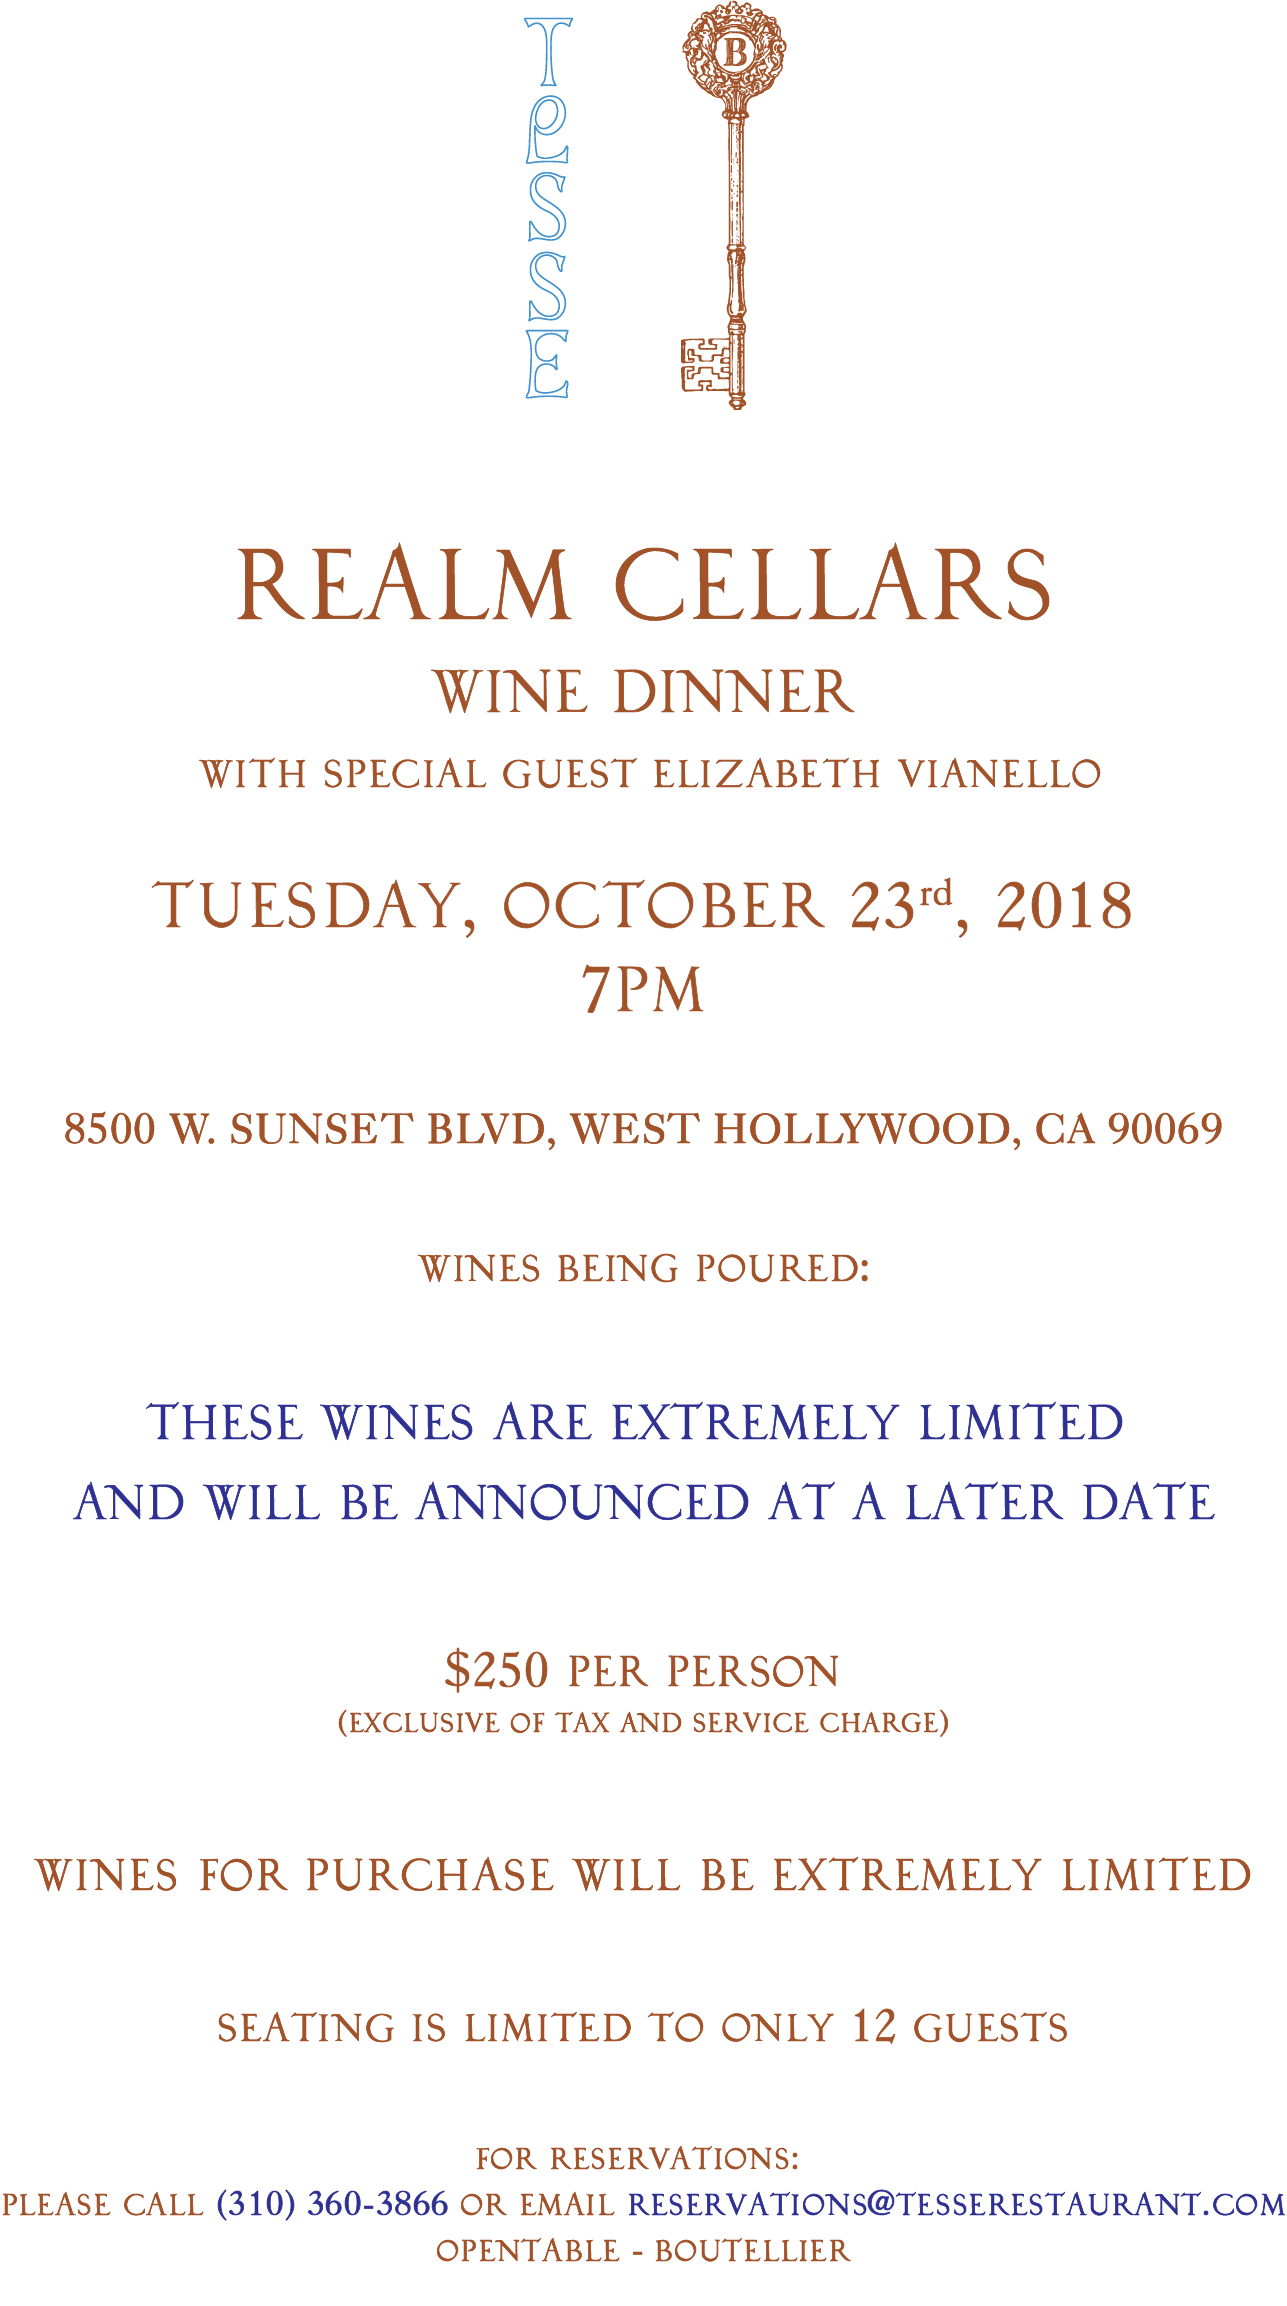 Realm Cellars Wine Dinner Invite.png